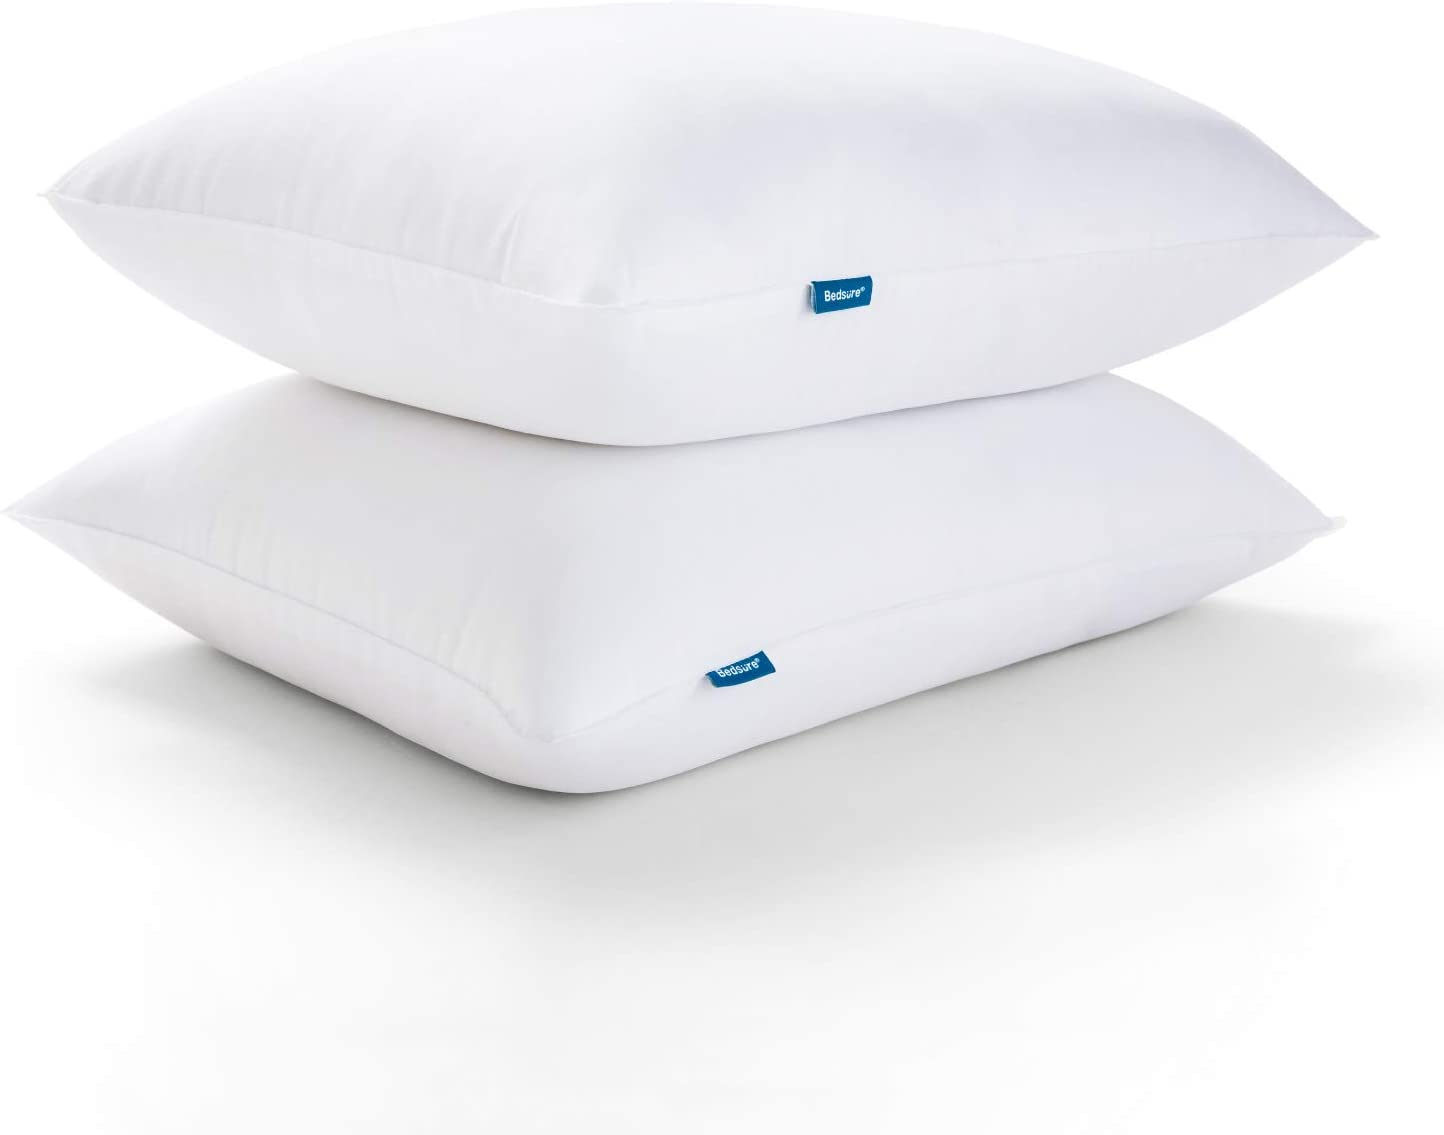 Bedsure Bed Pillows for Sleeping 2 Pack - Soft Down Alternative Hotel Quality Pillow Set Standard Size 20X26 inches - Hypoallergenic Sleep Pillows for Side and Back Sleeper